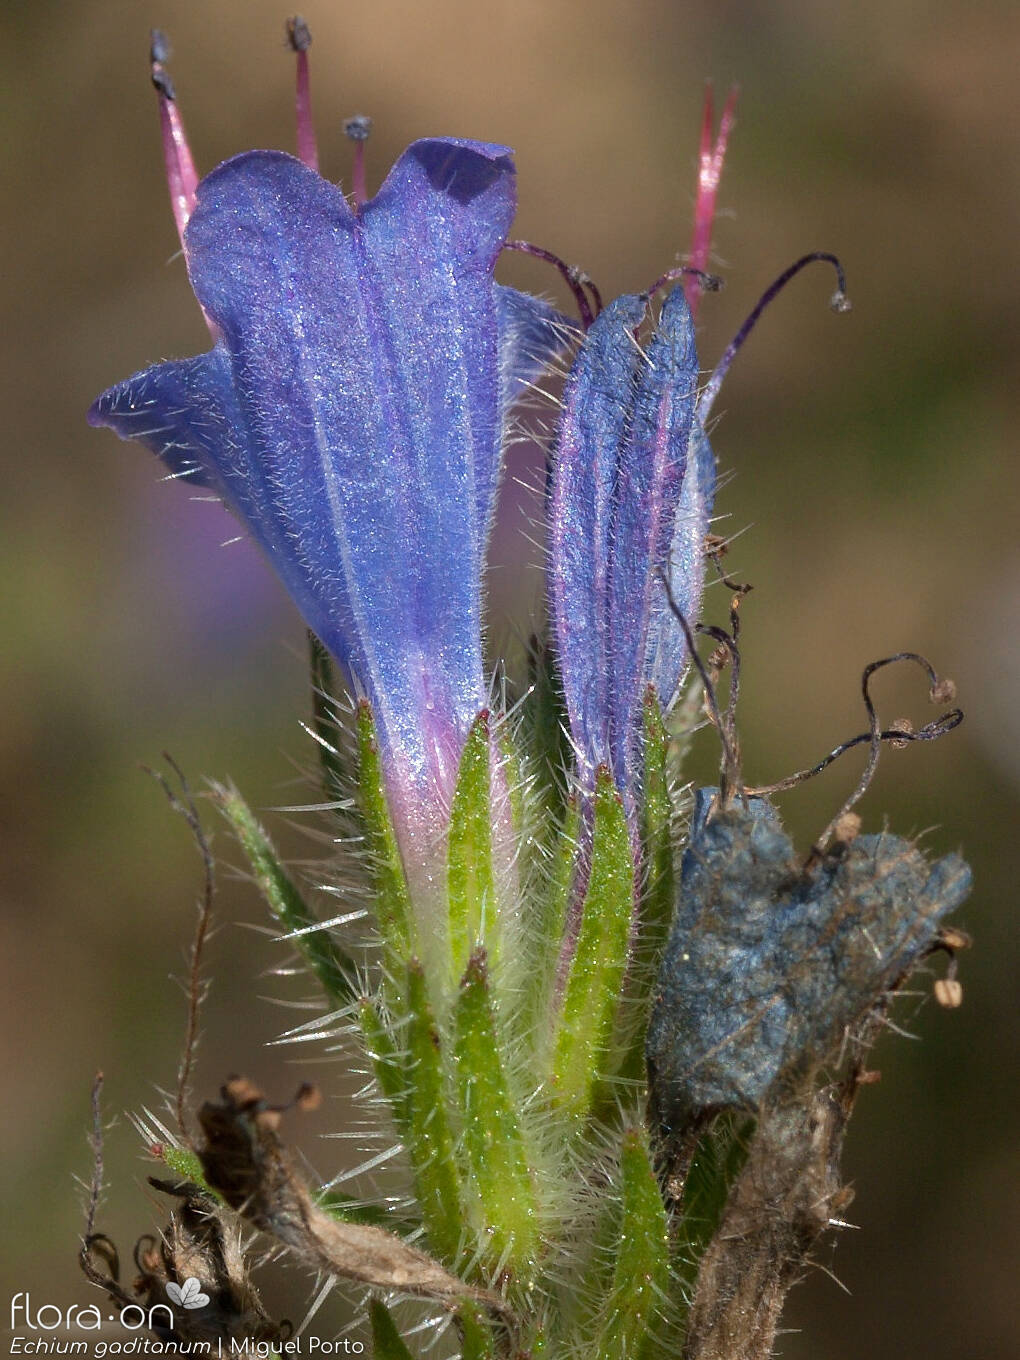 Echium gaditanum - Flor (close-up) | Miguel Porto; CC BY-NC 4.0